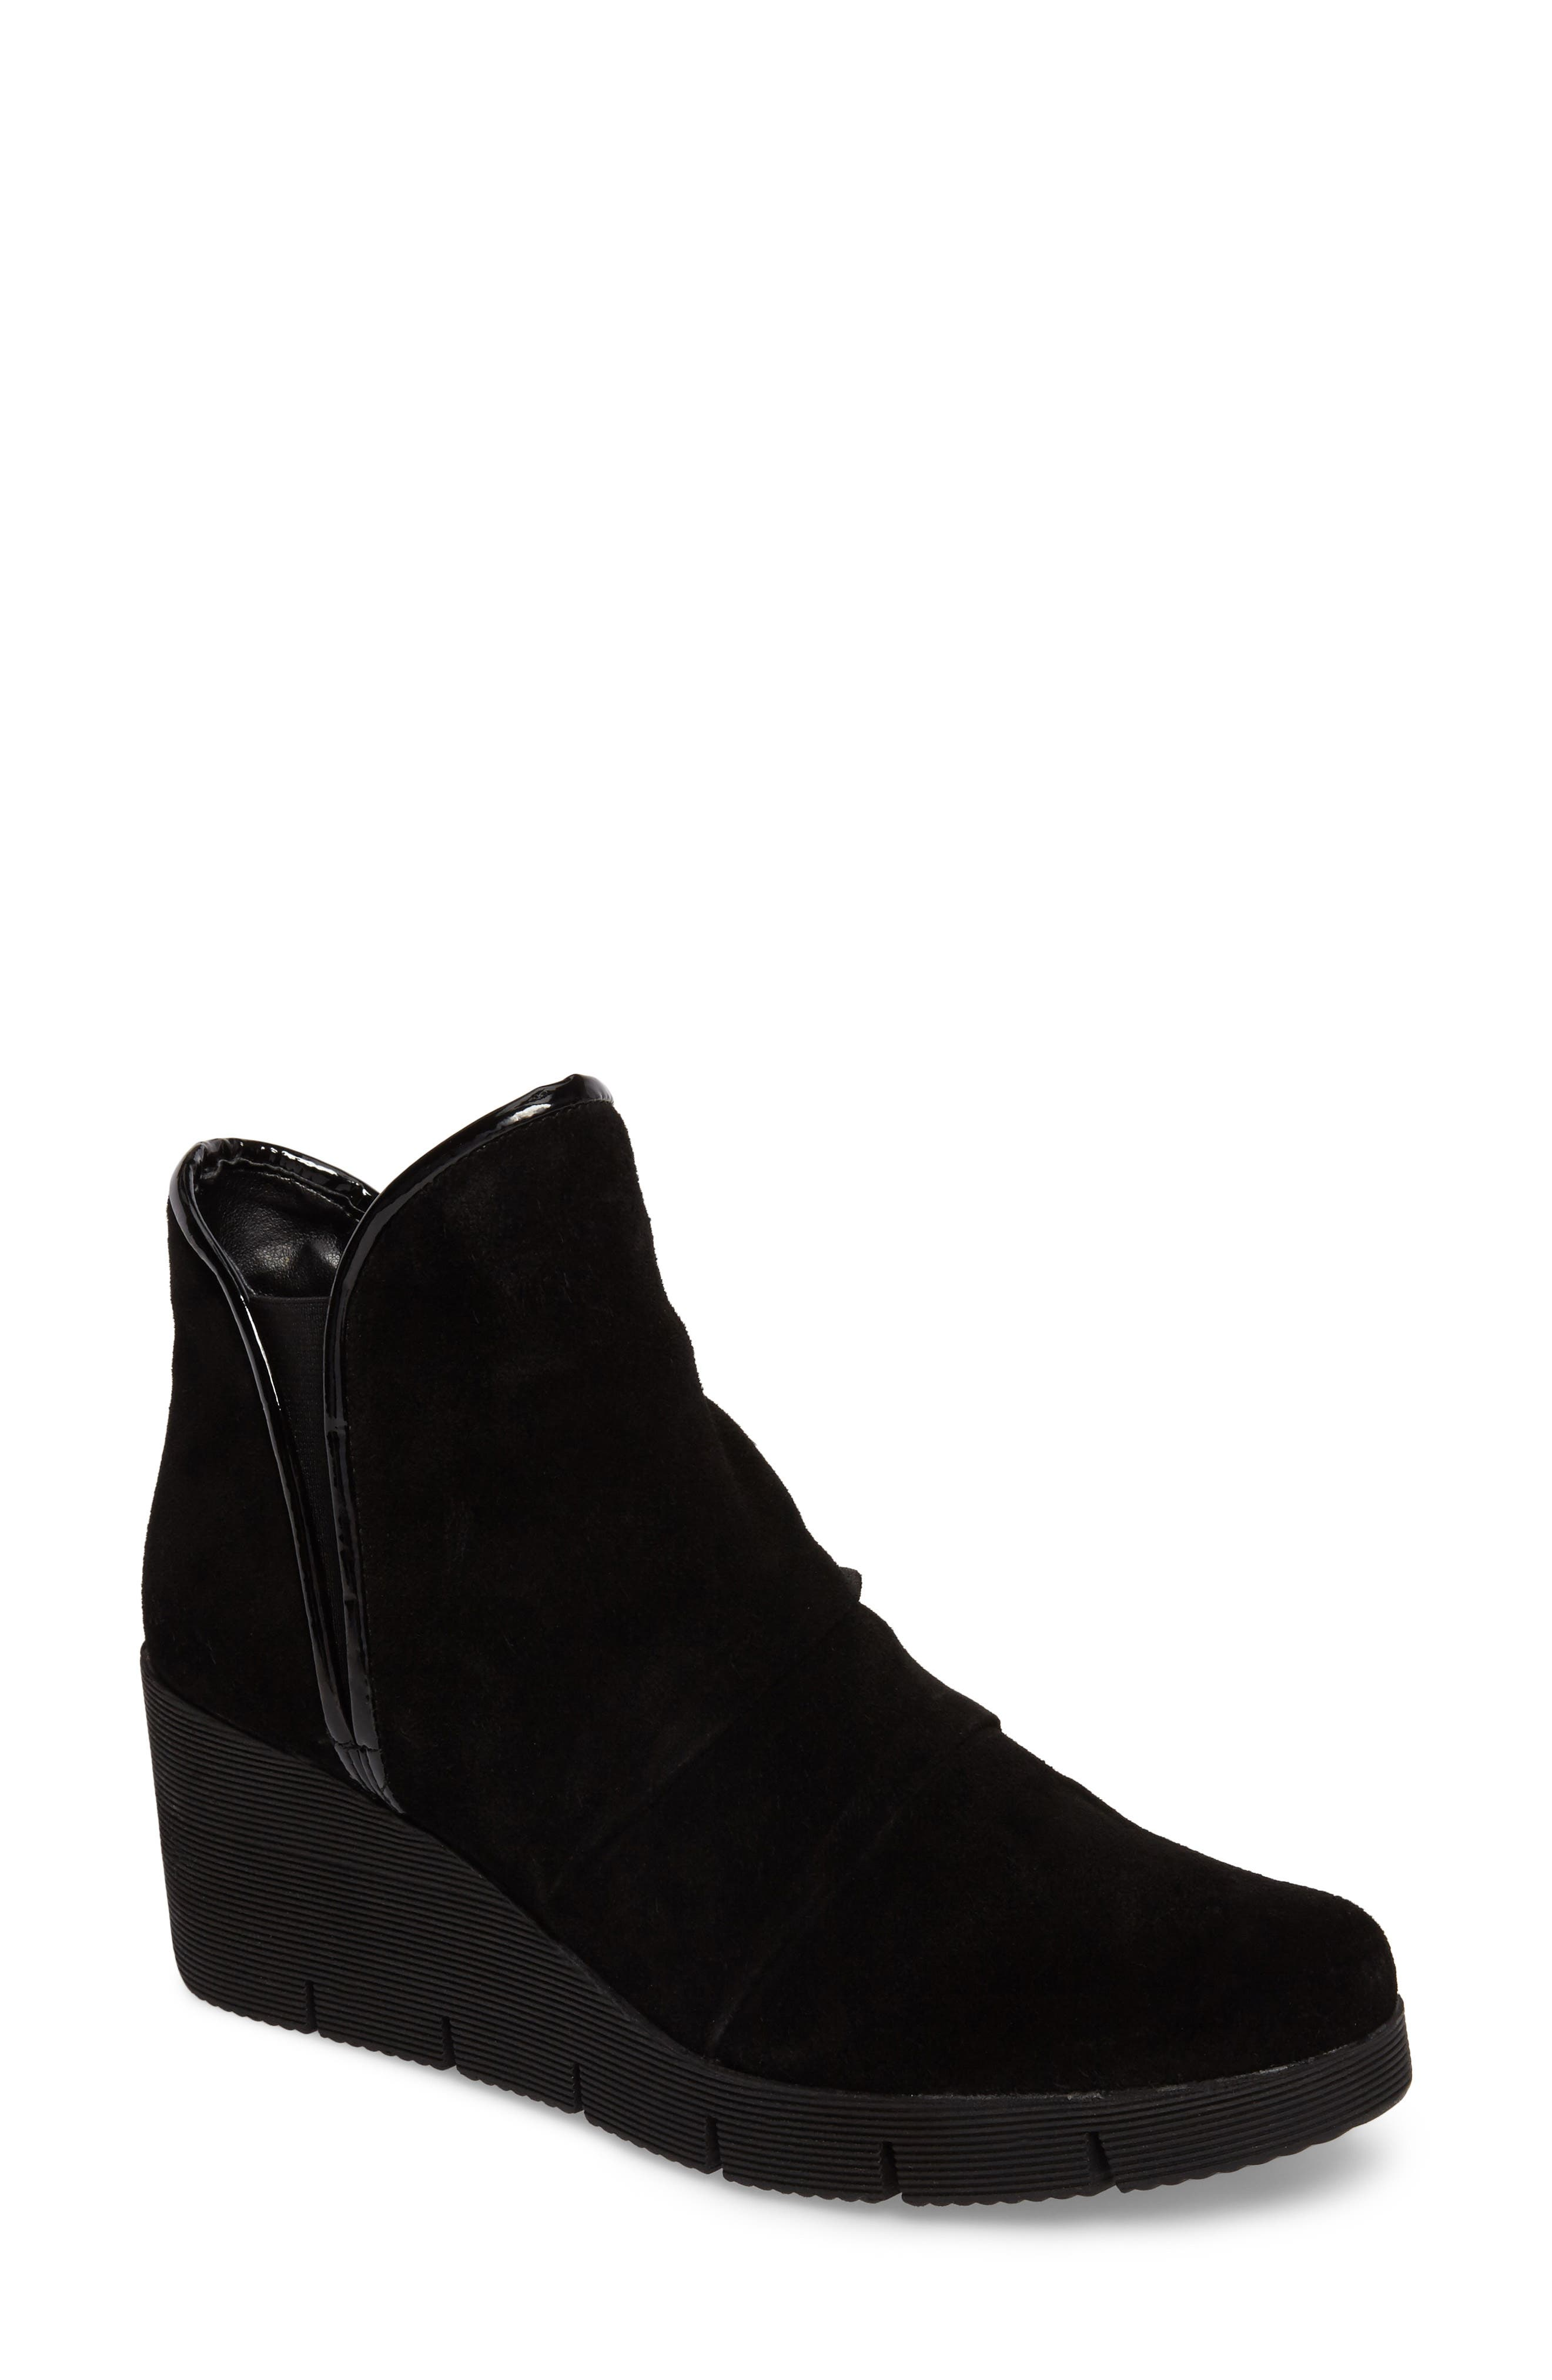 'Spaceless' Chelsea Wedge Boot,                             Main thumbnail 1, color,                             003